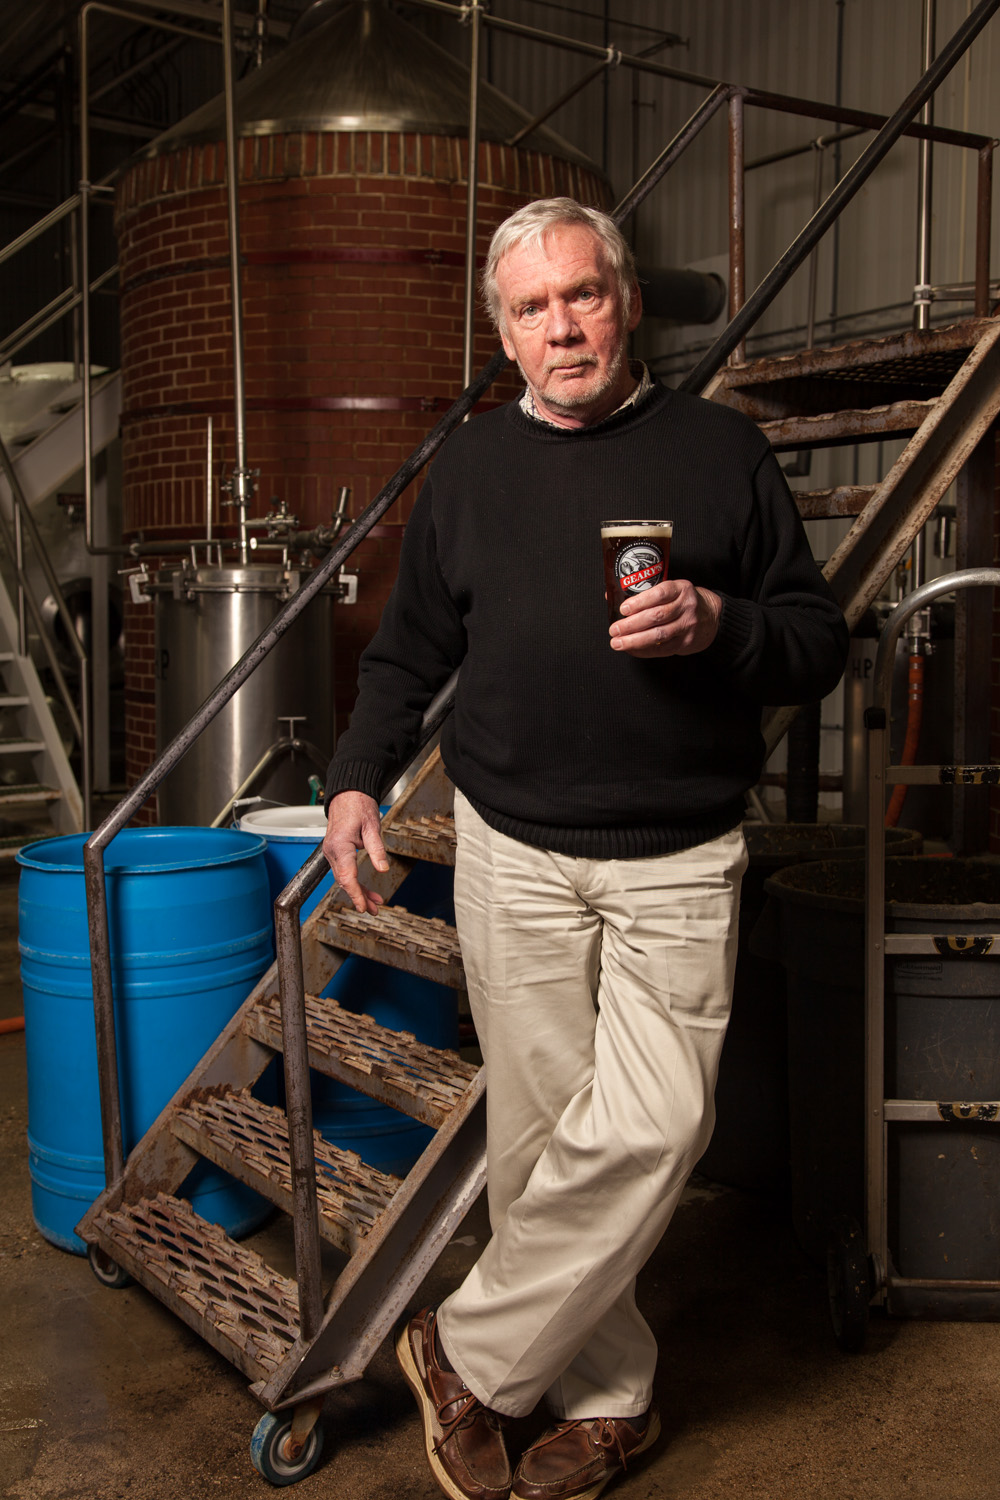 David L Geary, Brewmaster DL Geary Brewing Co. Portland, ME Established in 1986